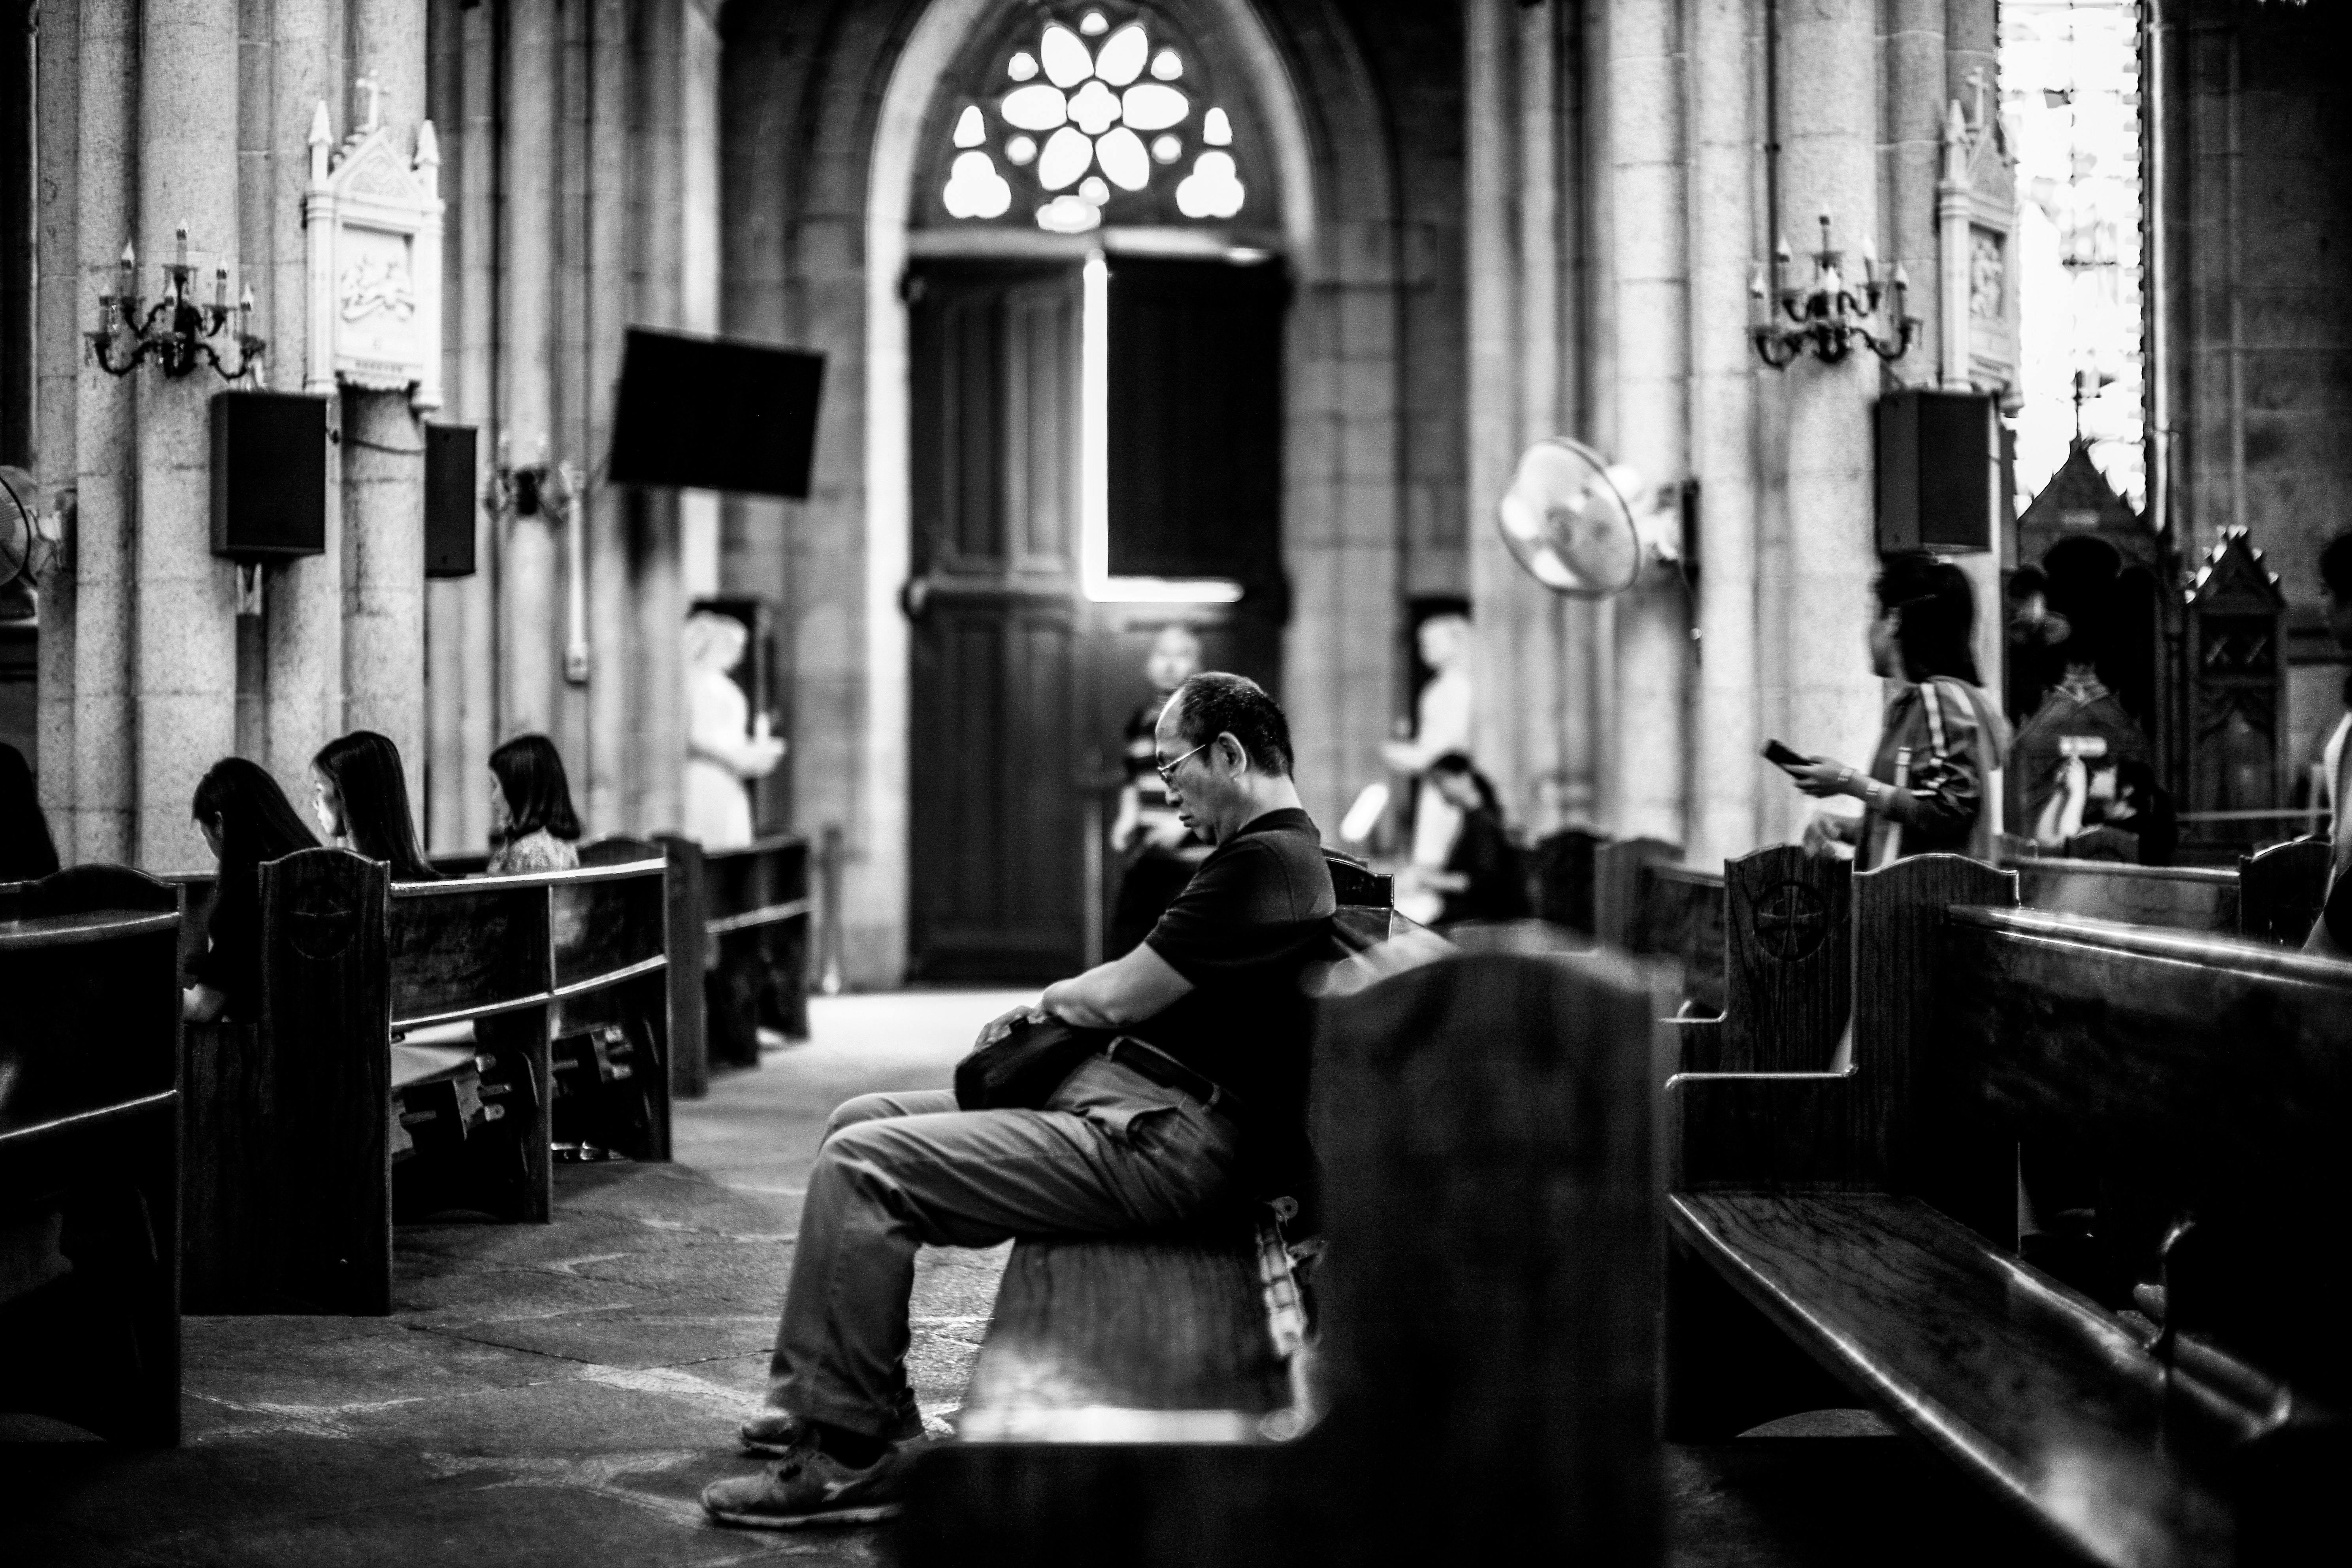 grayscale photography of man sitting on pew